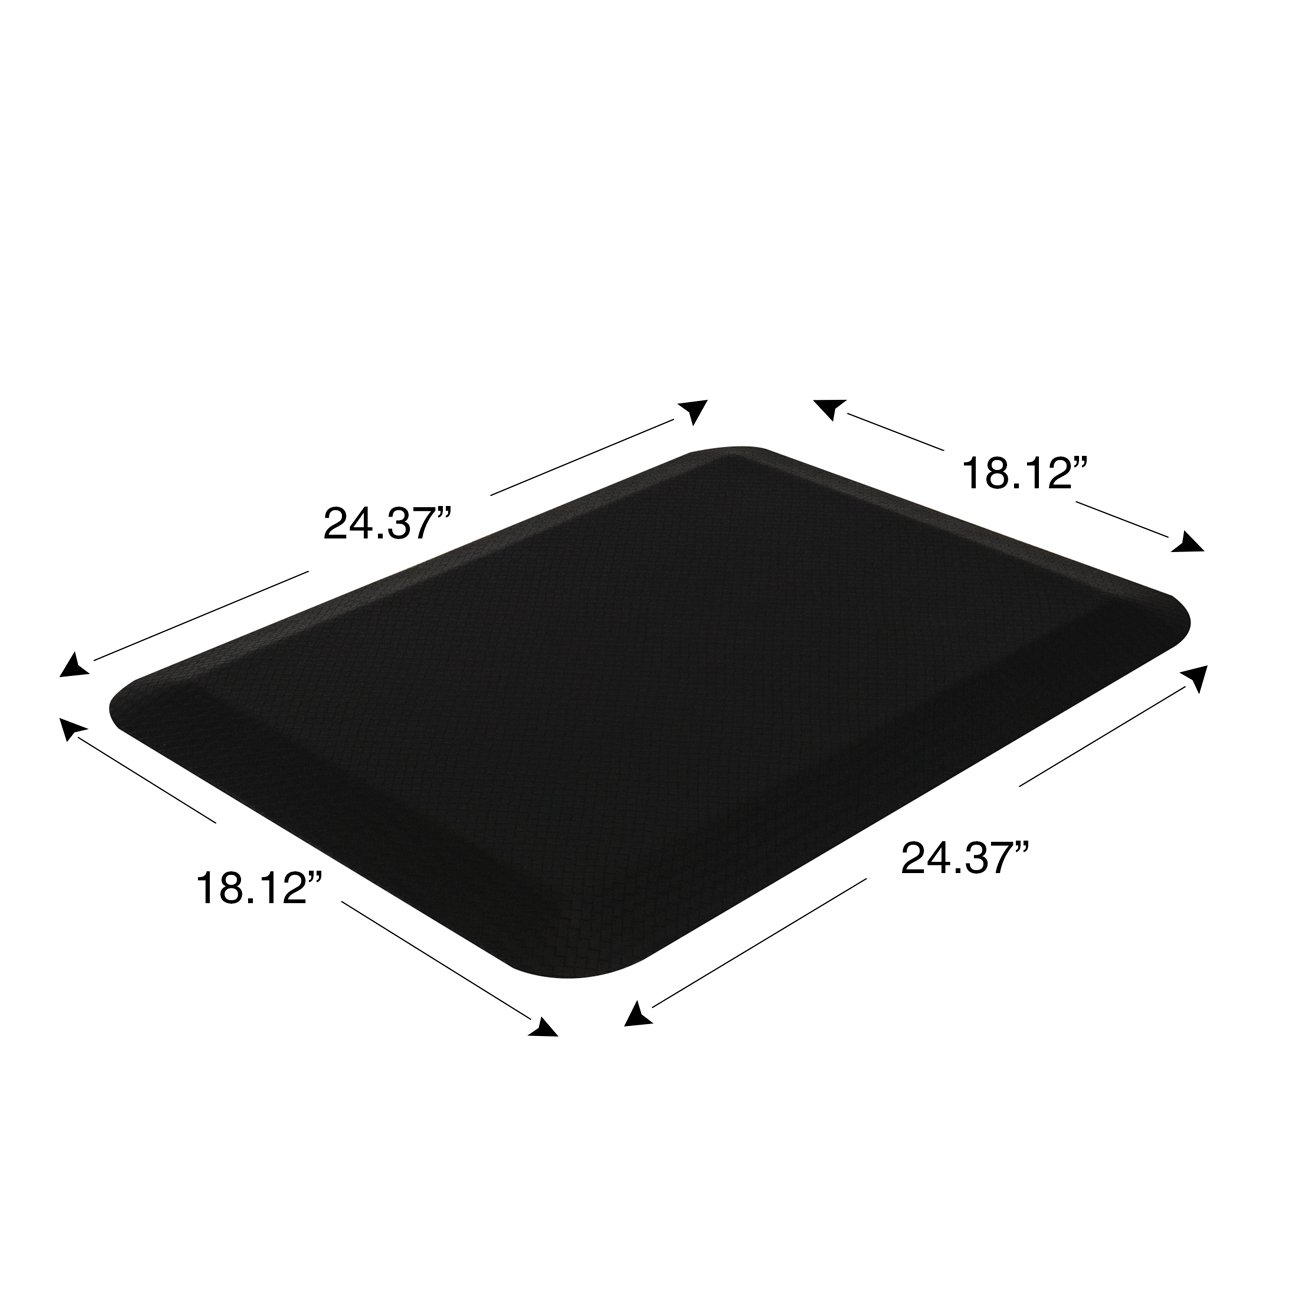 Sorbus Anti Fatigue Mat - Comfort Standing Mat Kitchen Rug - Perfect for Kitchen and Standing Office Desk (24 in x 18 in, Black) by Sorbus (Image #5)